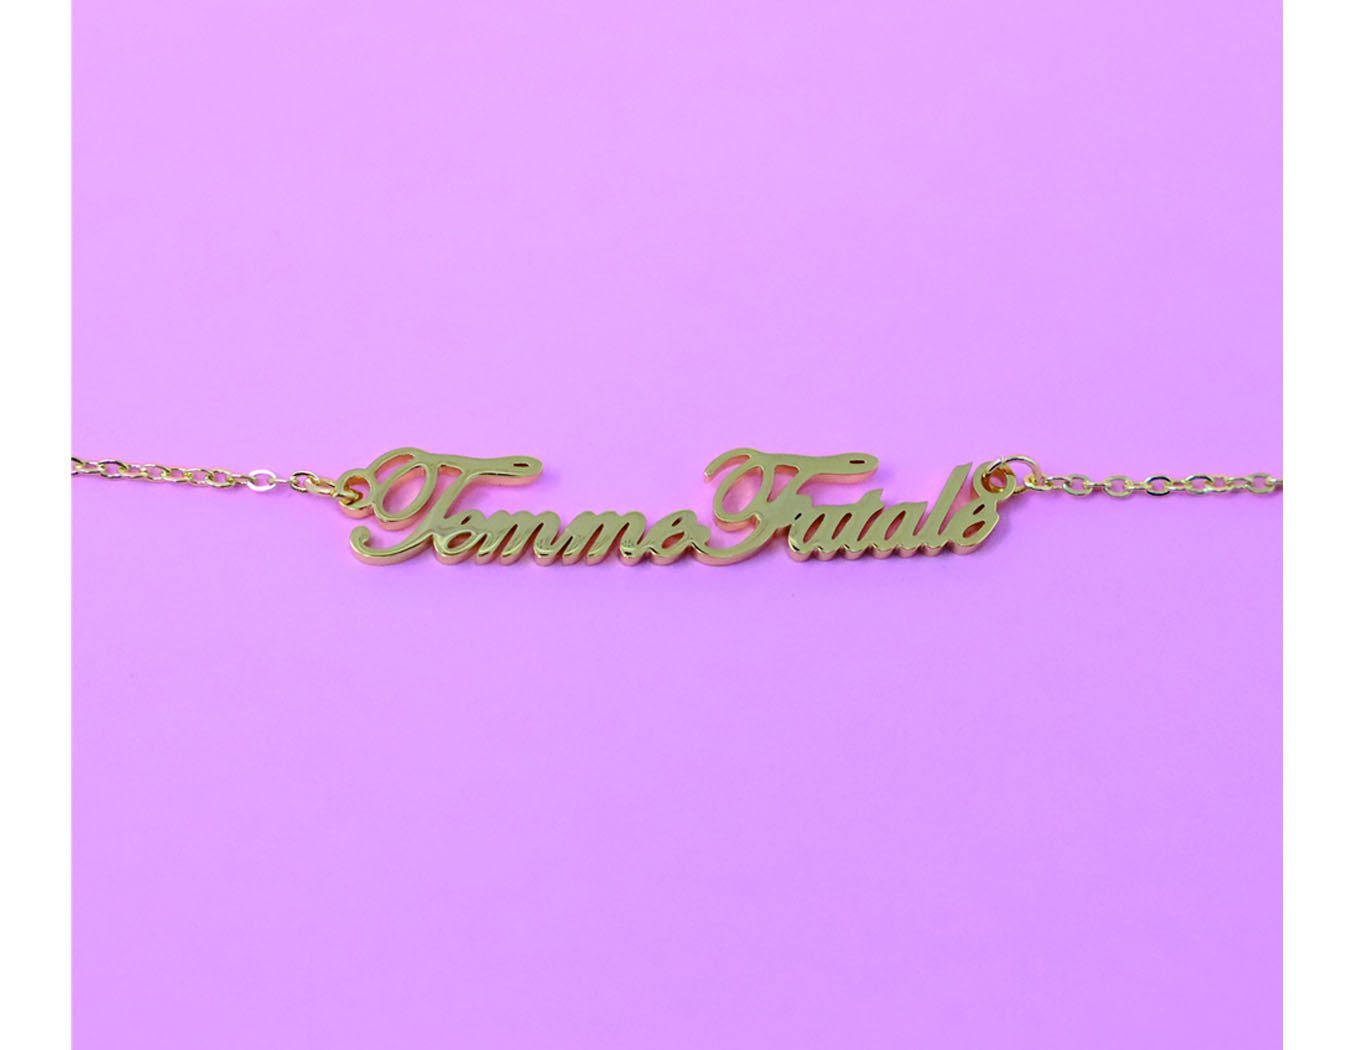 Femme Fatale necklace - Nameplate necklace - Girl power